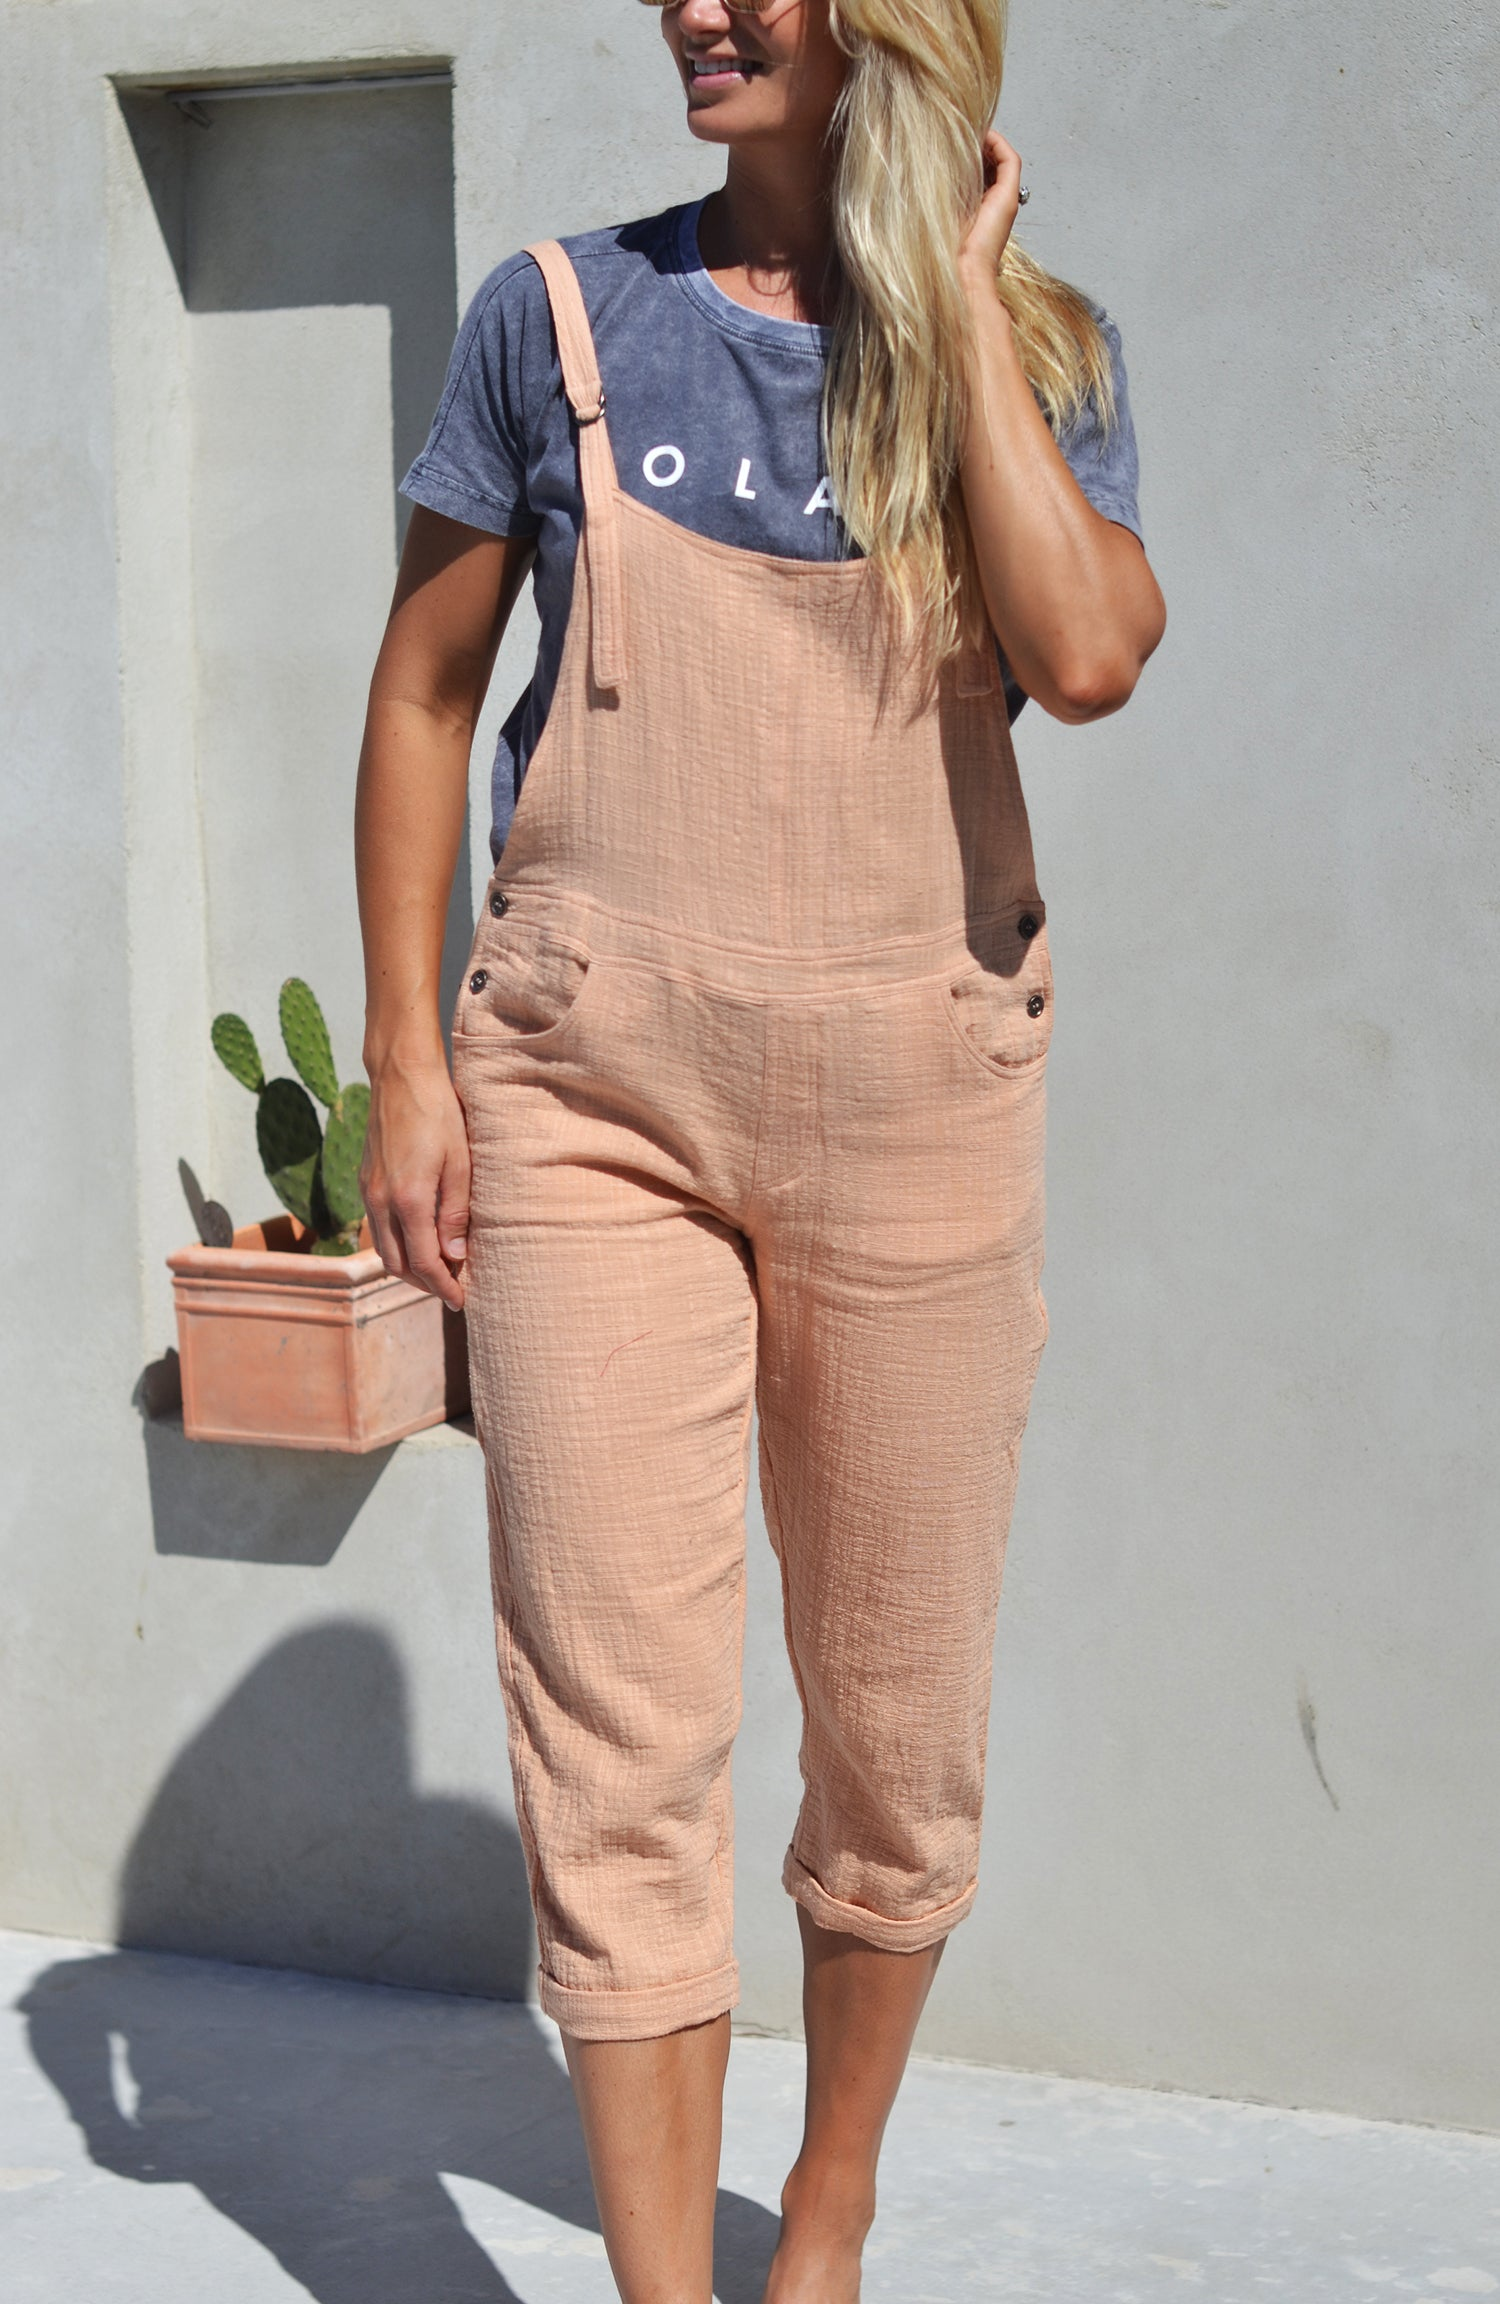 BAREFOOT OVERALLS PEACH - OLAS SUPPLY CO.